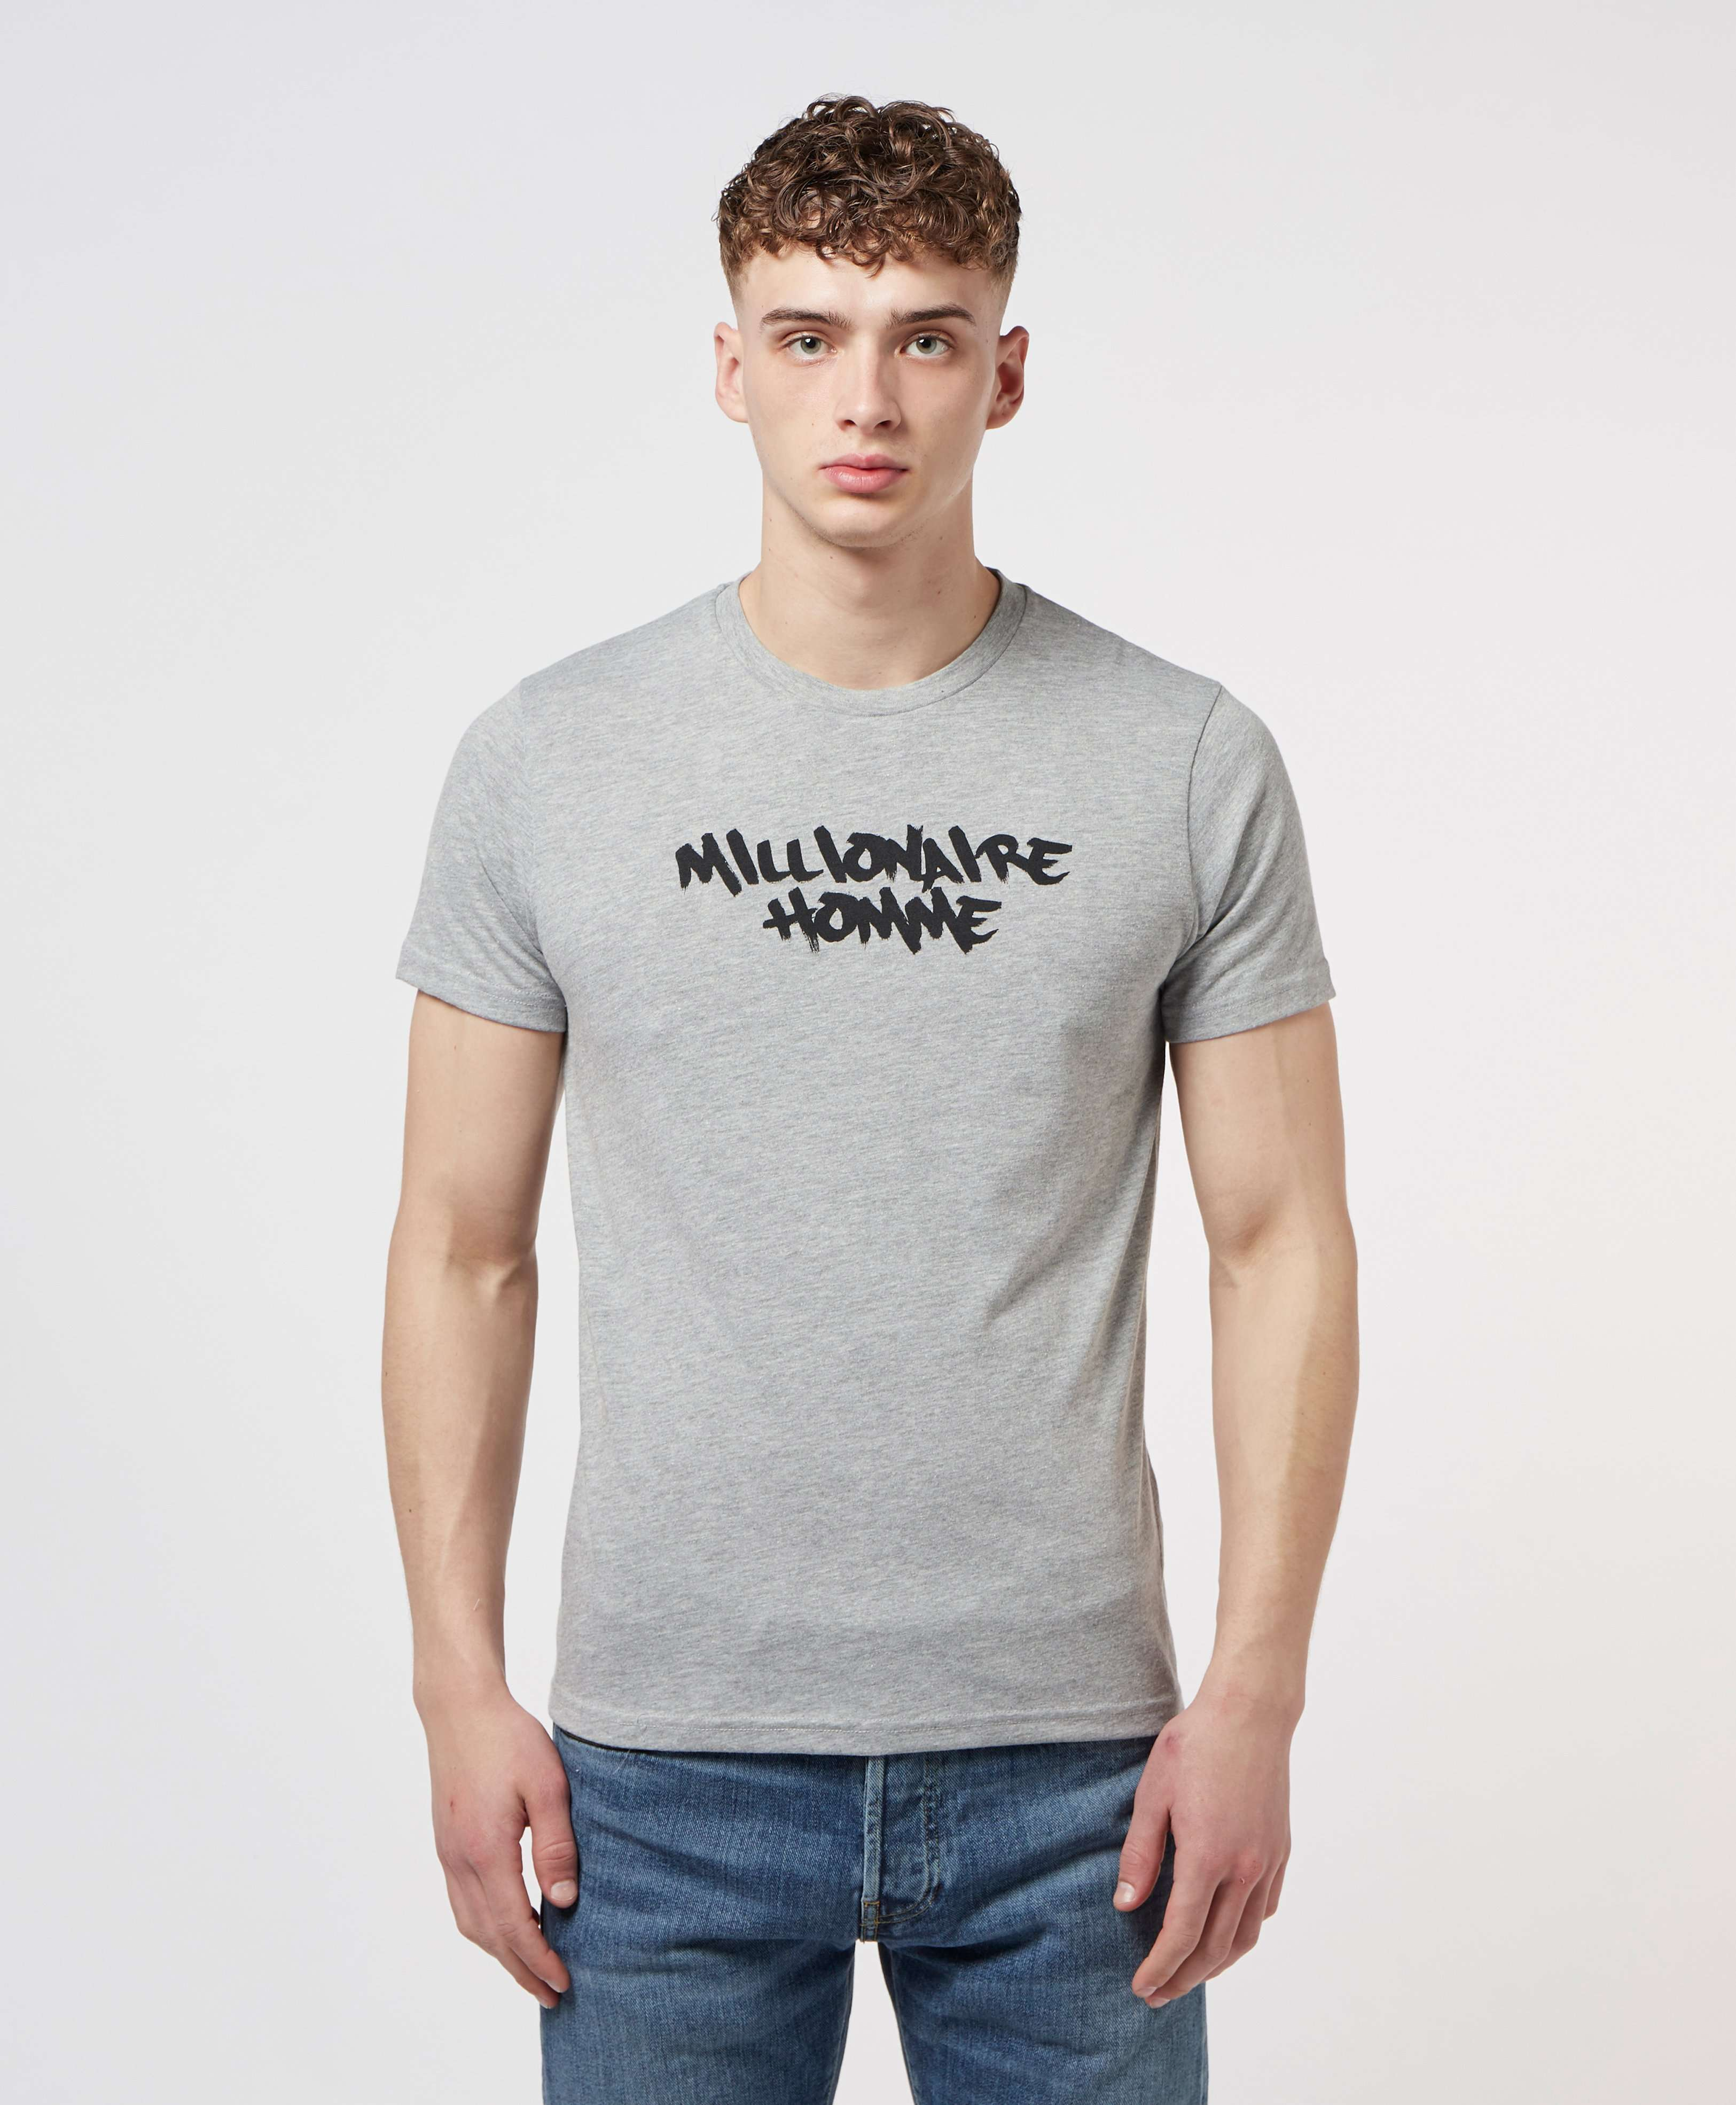 Millionaire Homme Paint Logo Short Sleeve T-Shirt - Online Exclusive